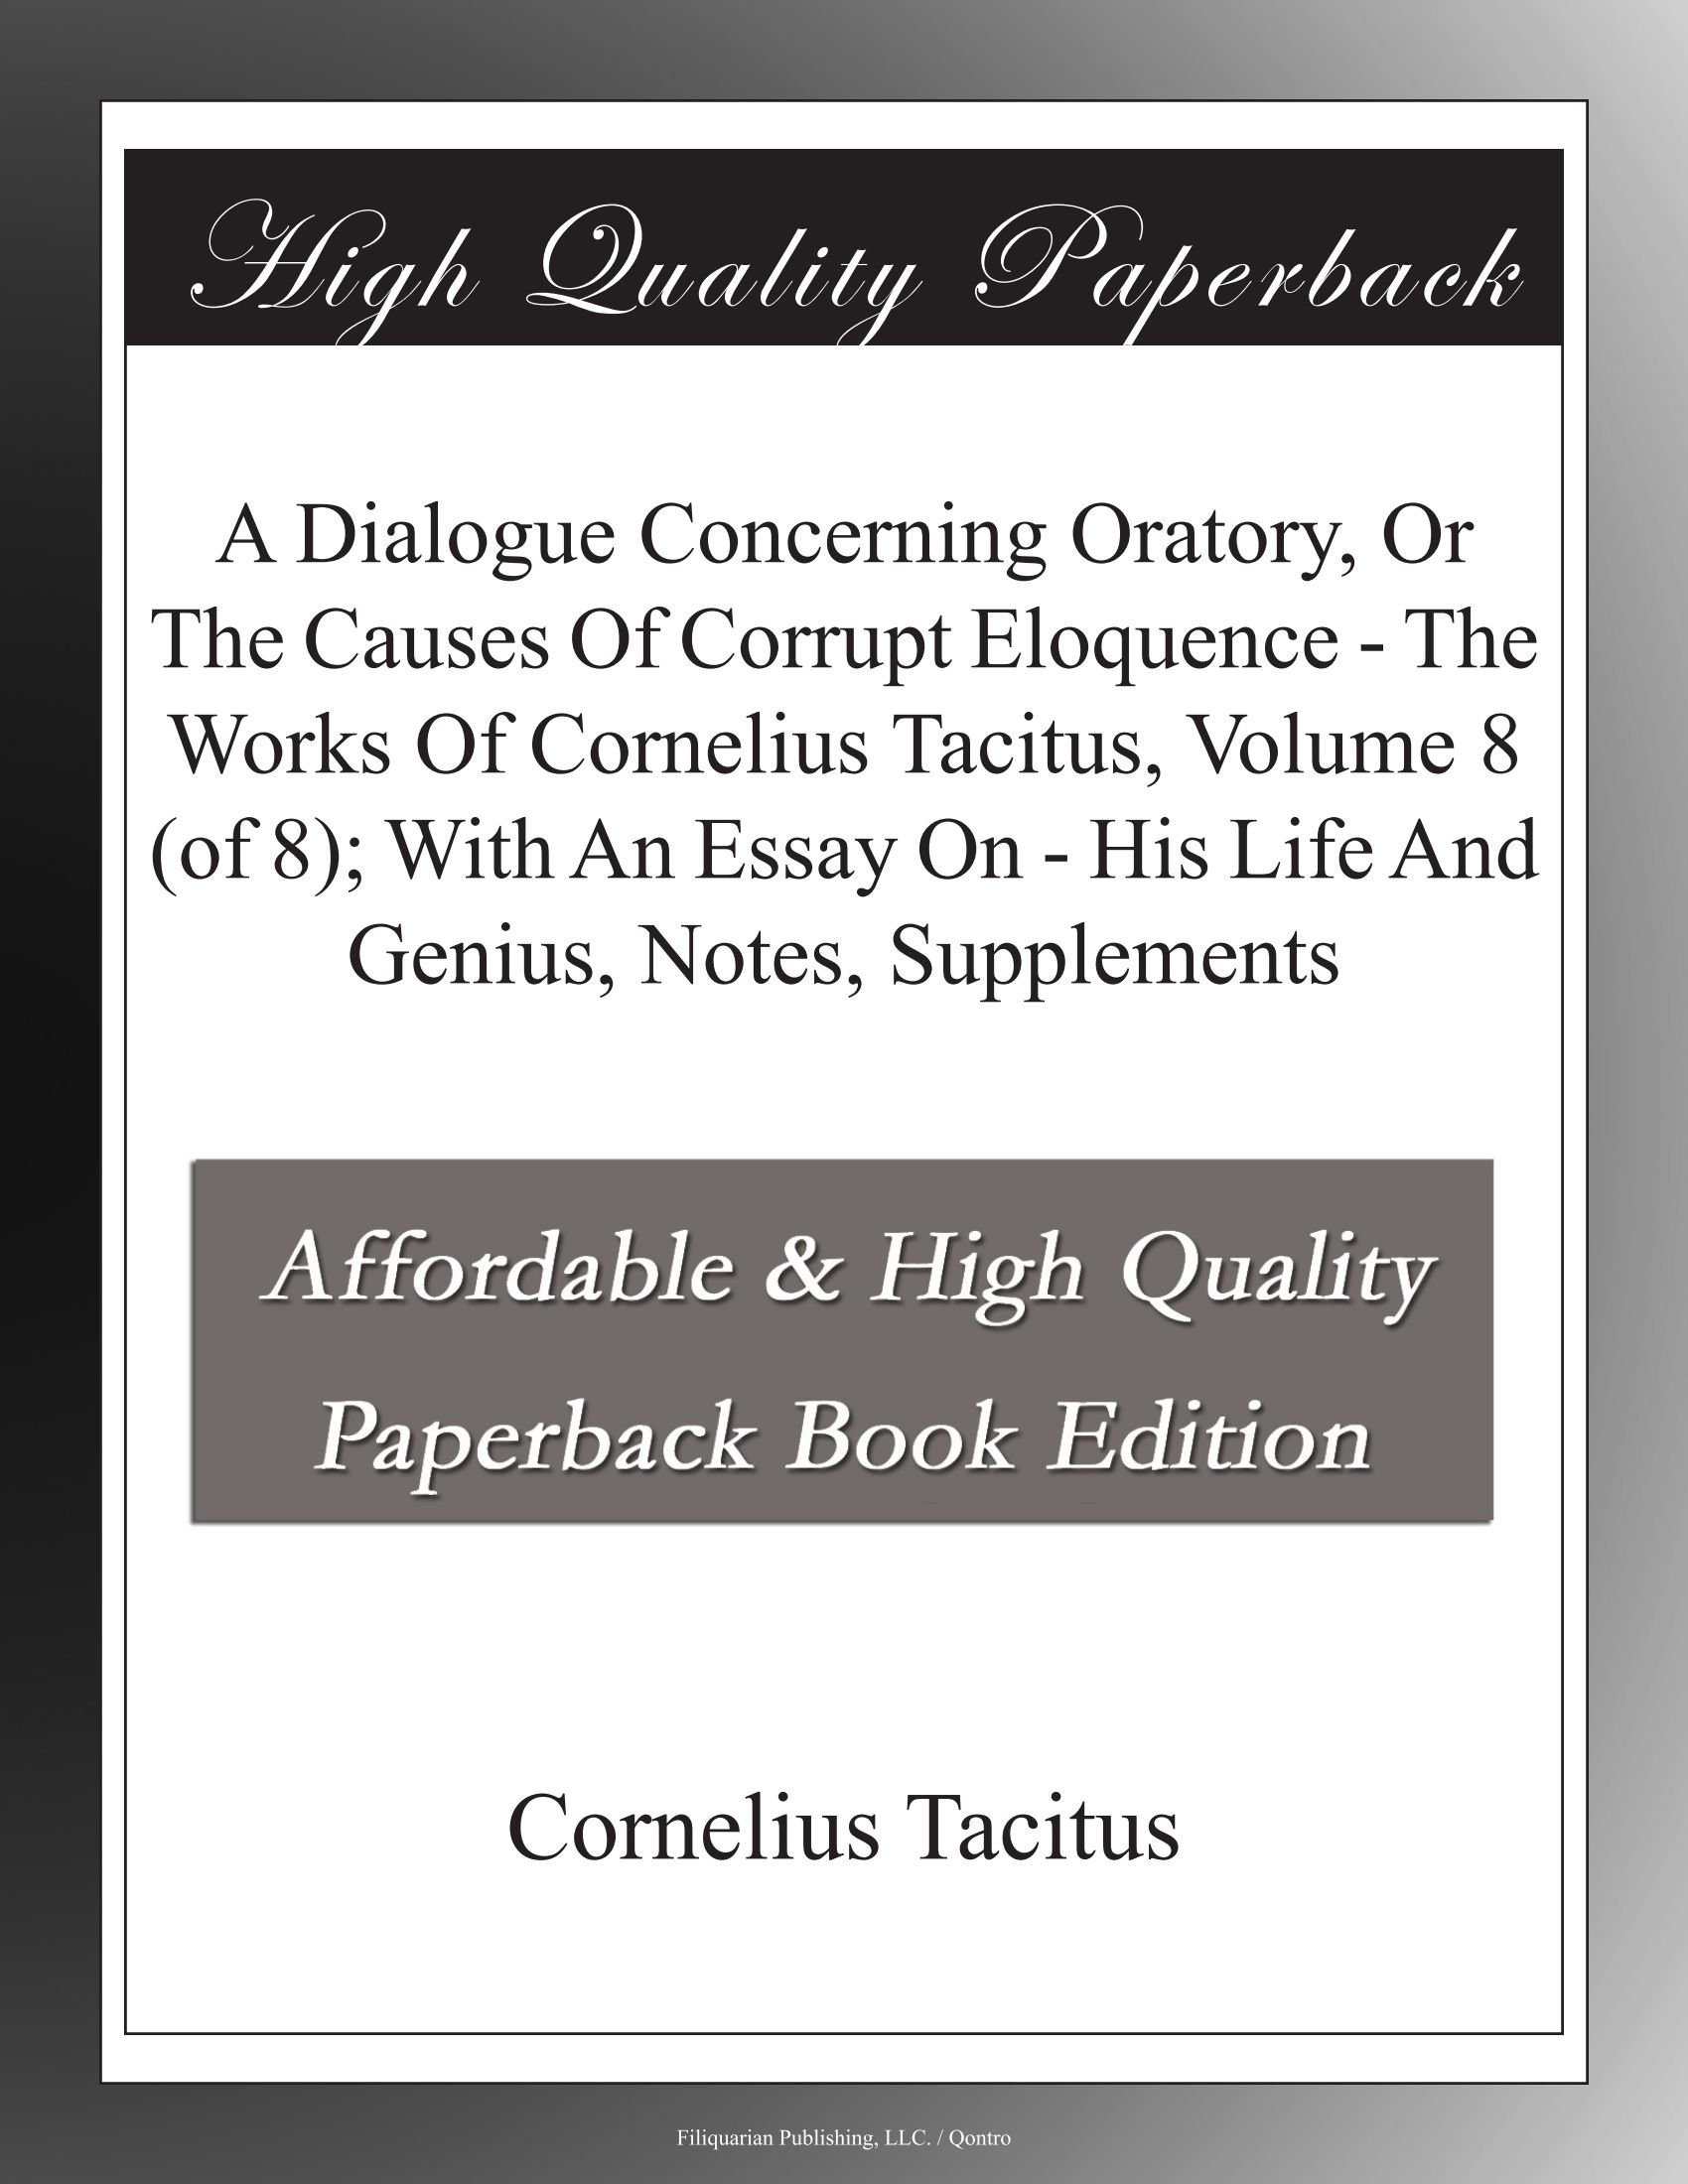 Essay On Healthy Foods A Dialogue Concerning Oratory Or The Causes Of Corrupt Eloquence  The  Works Of Cornelius Tacitus Volume  Of  With An Essay On  His Life  And Genius  English Essay Topics For College Students also High School Essay Sample A Dialogue Concerning Oratory Or The Causes Of Corrupt Eloquence  Essay Writing Business